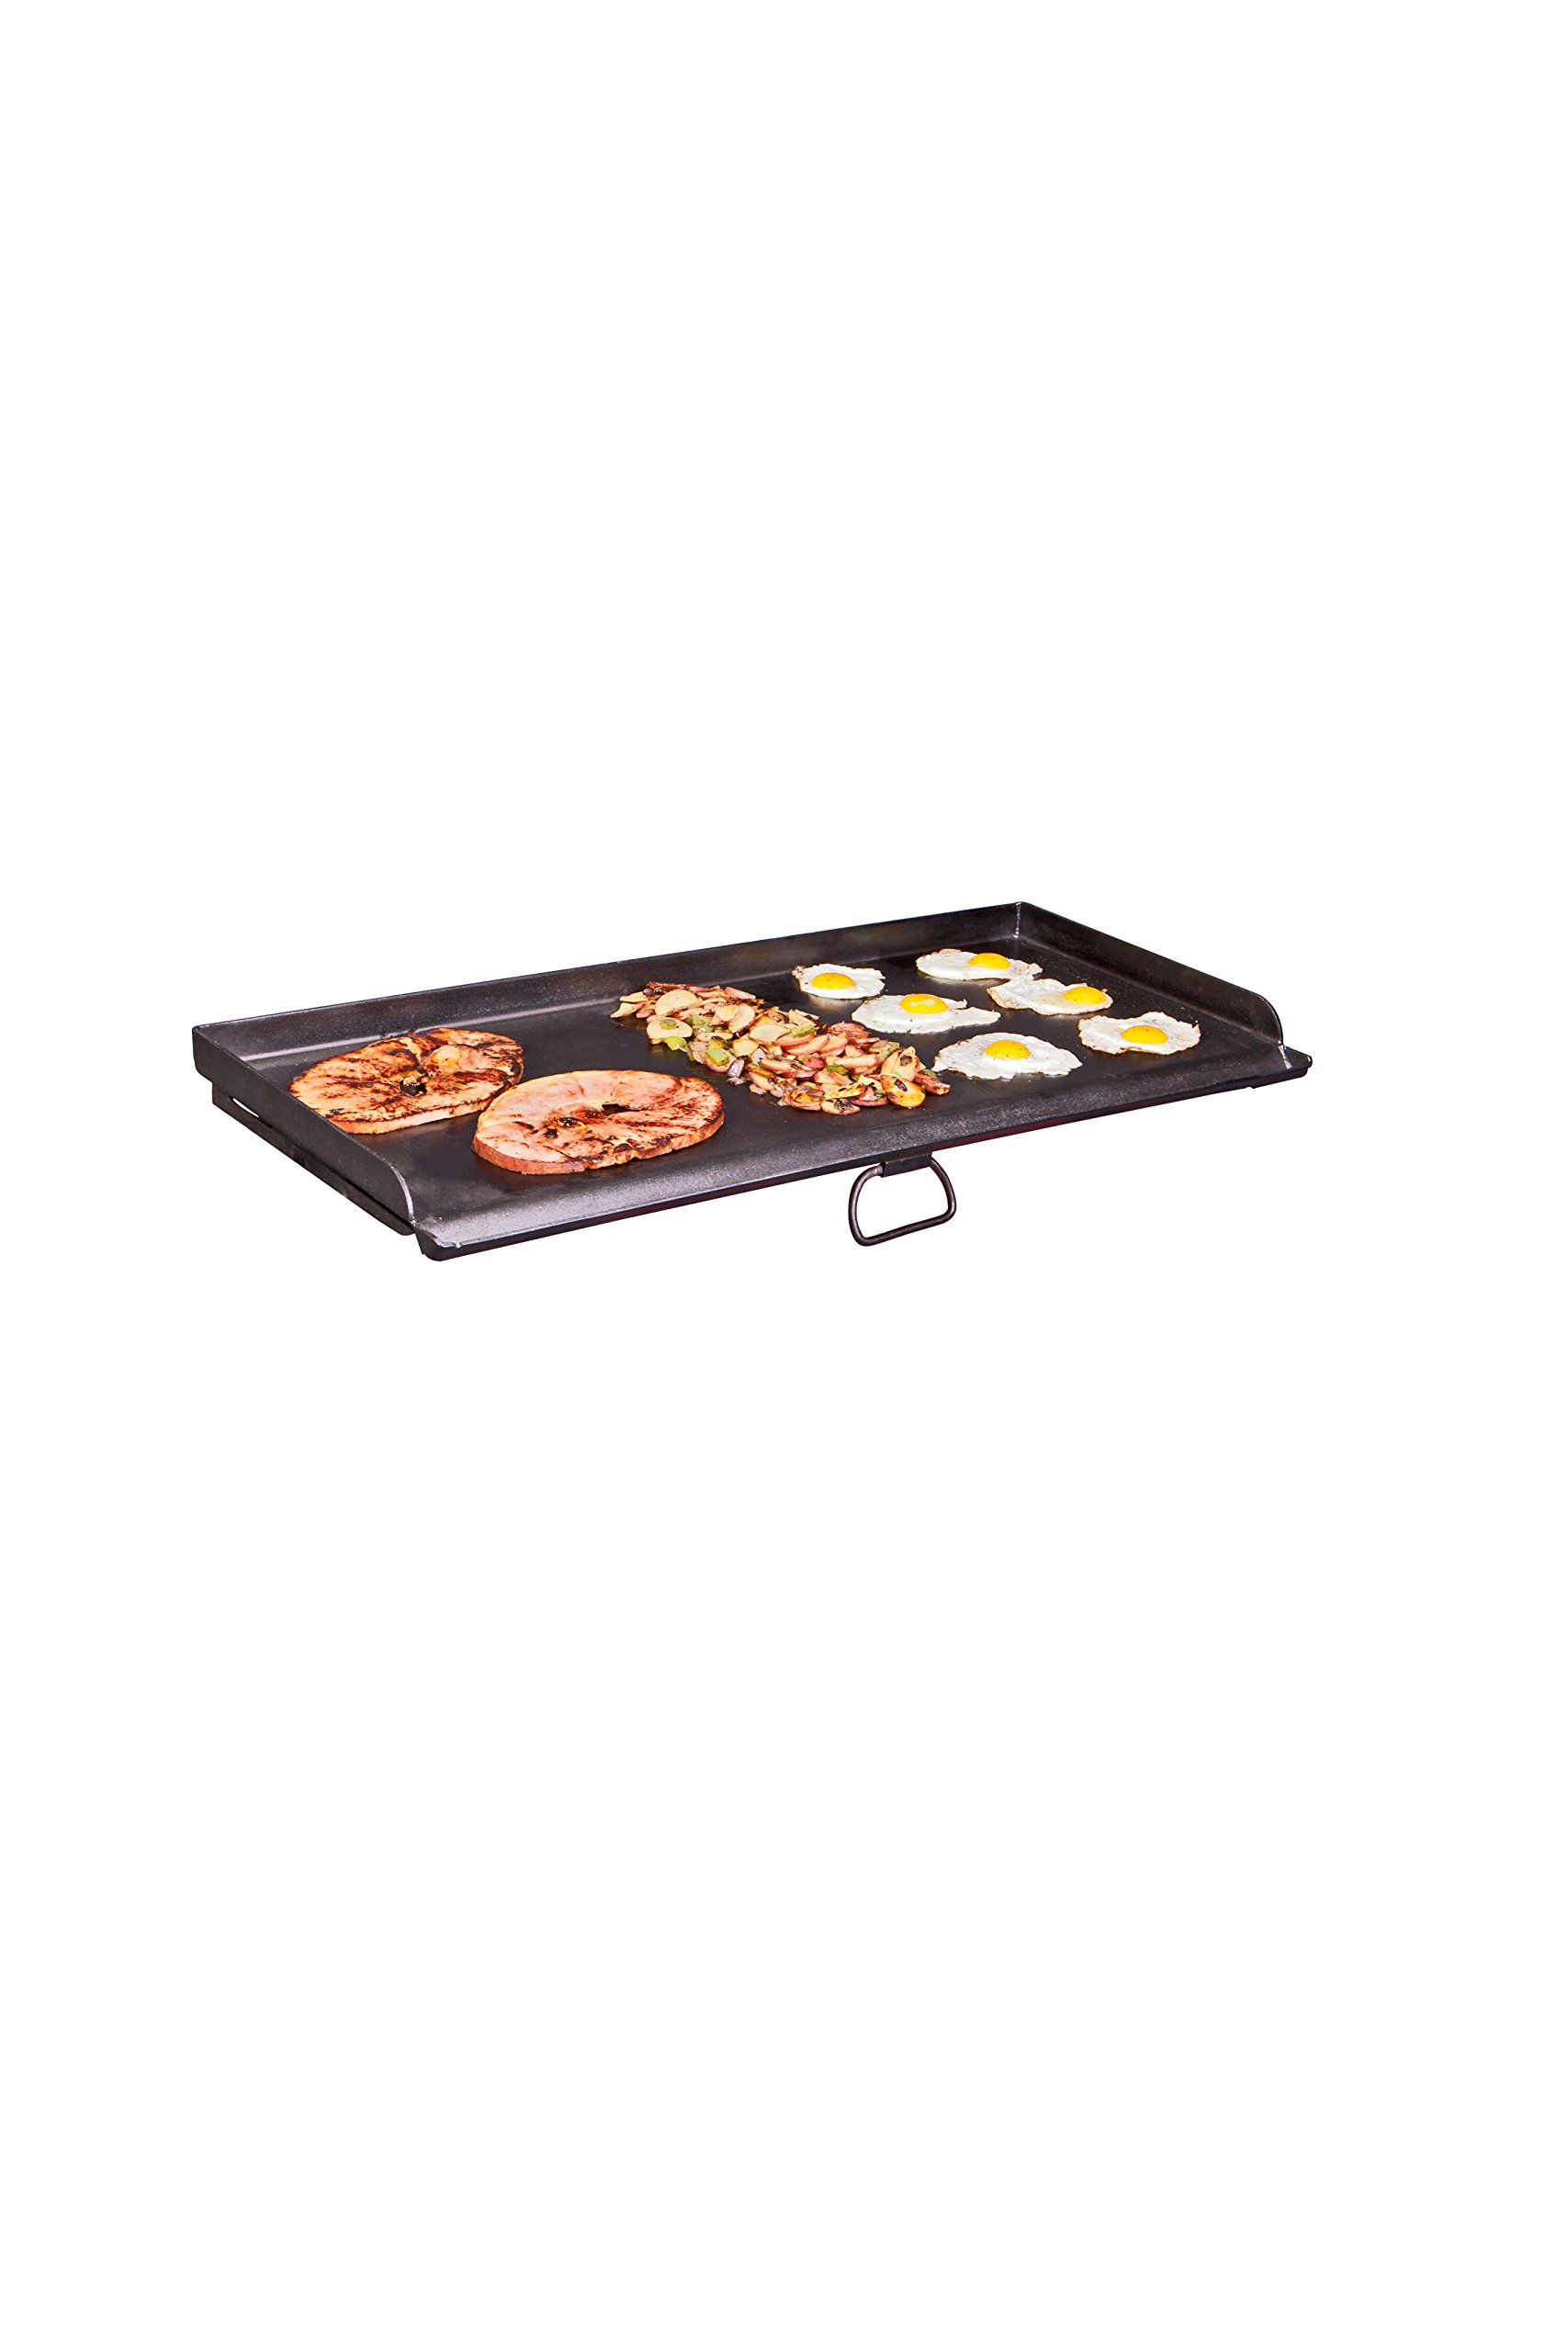 Camp Chef SG100 Deluxe steel fry griddle by Camp Chef (Image #2)